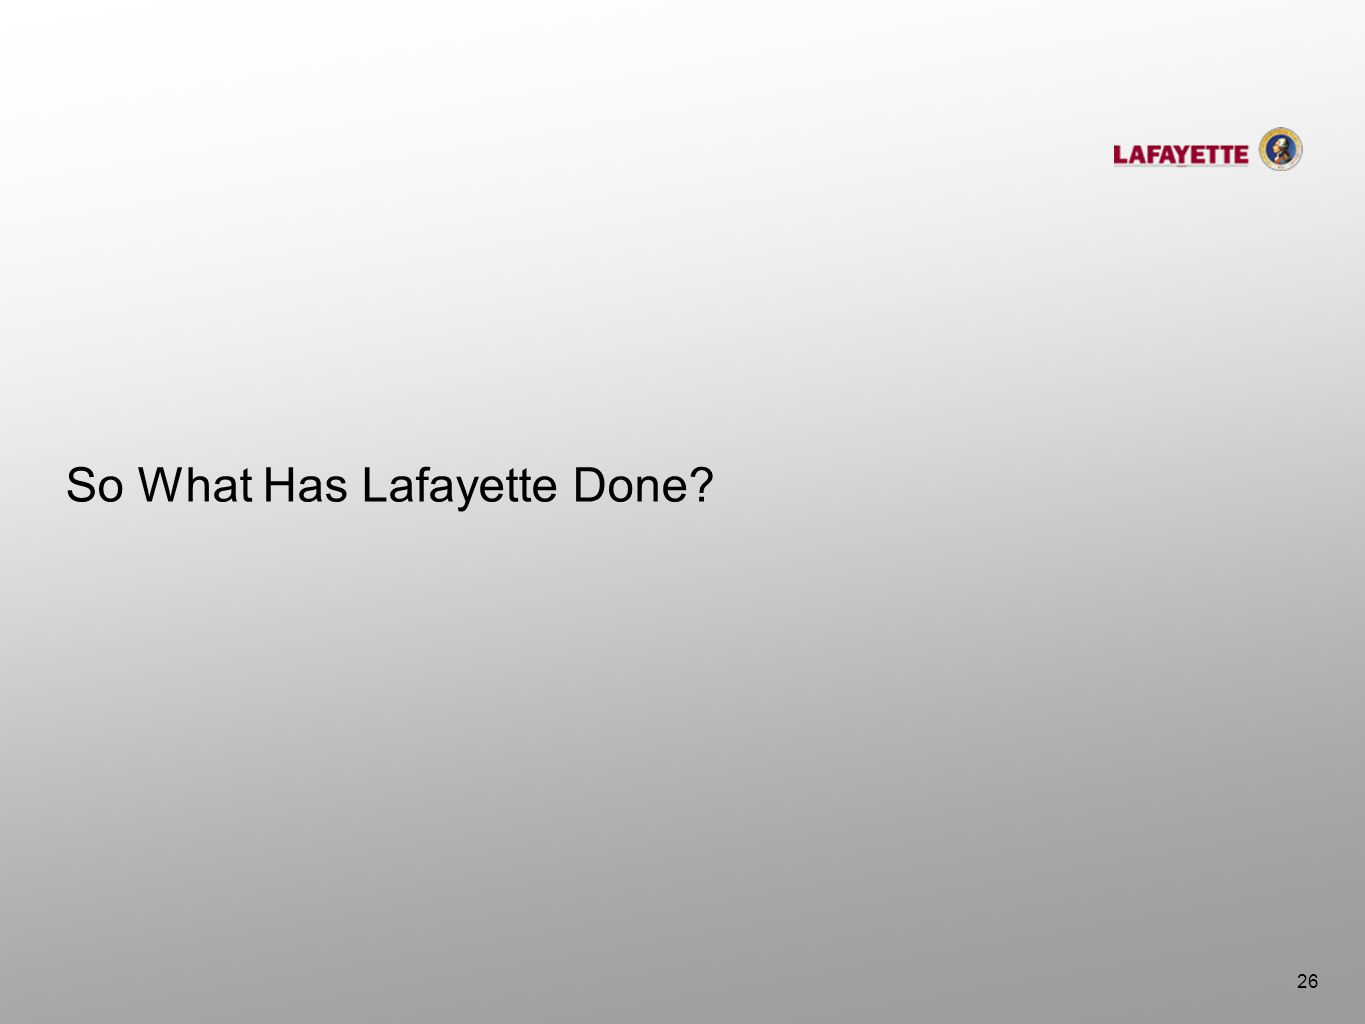 So What Has Lafayette Done? 26